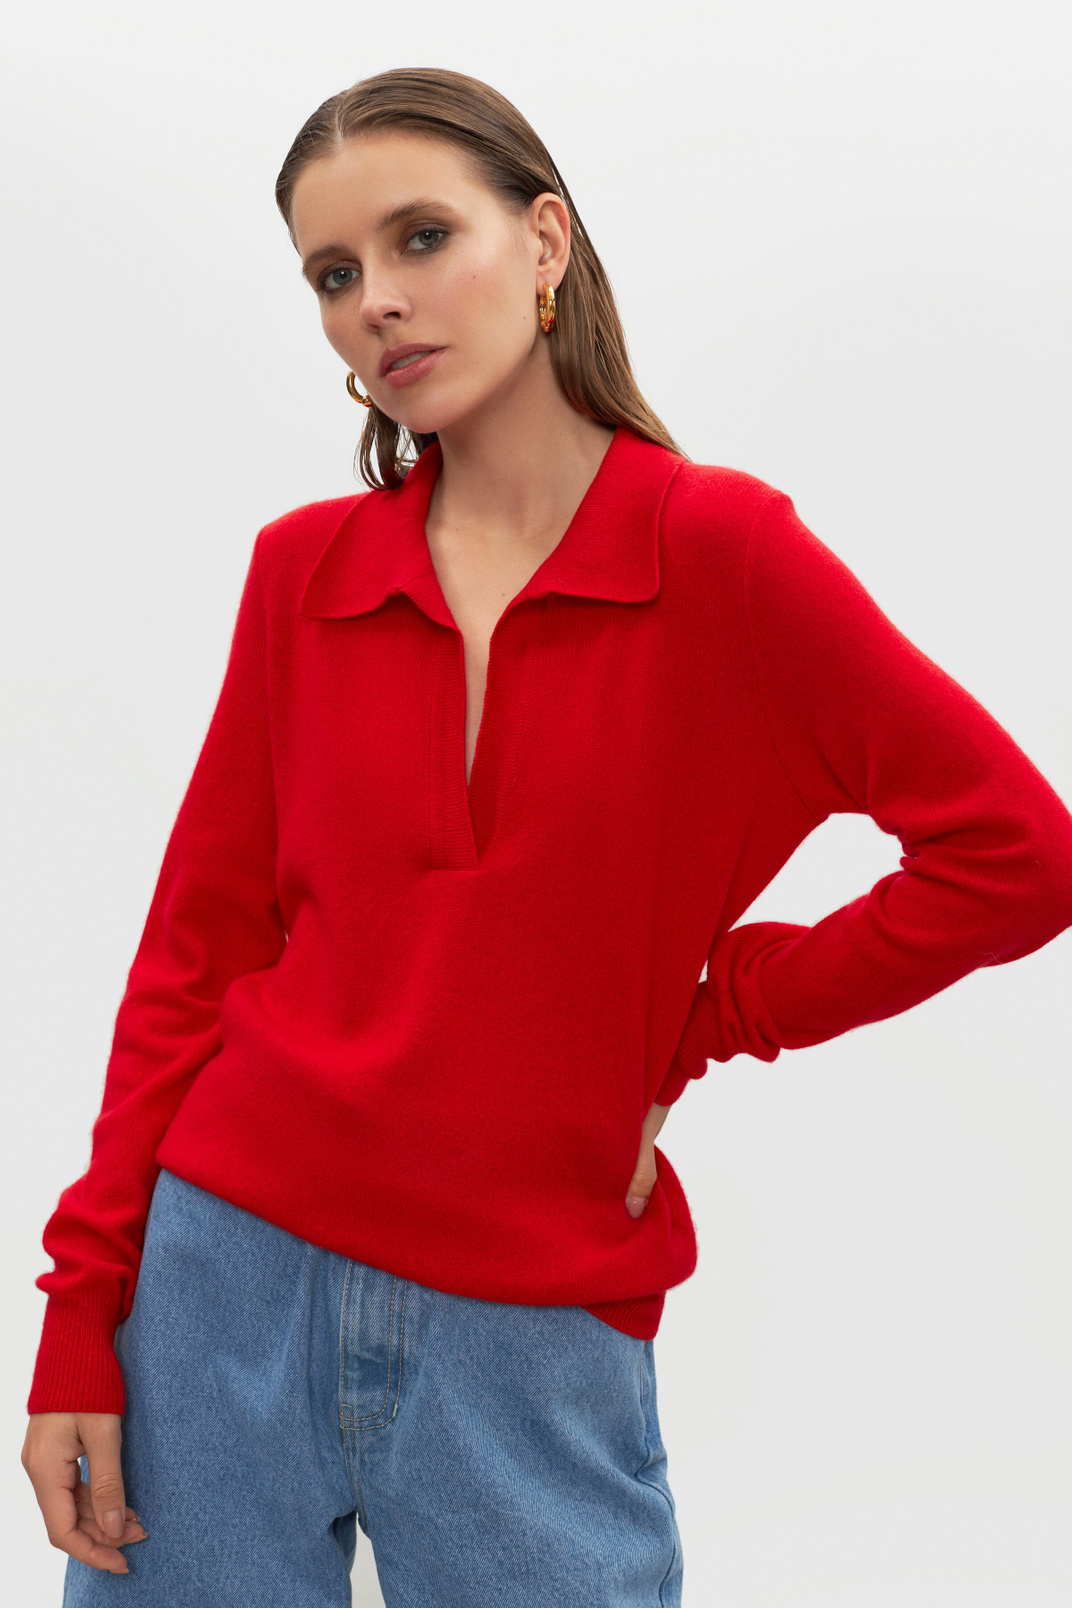 Sweater polo 100% cashmere, Red, S